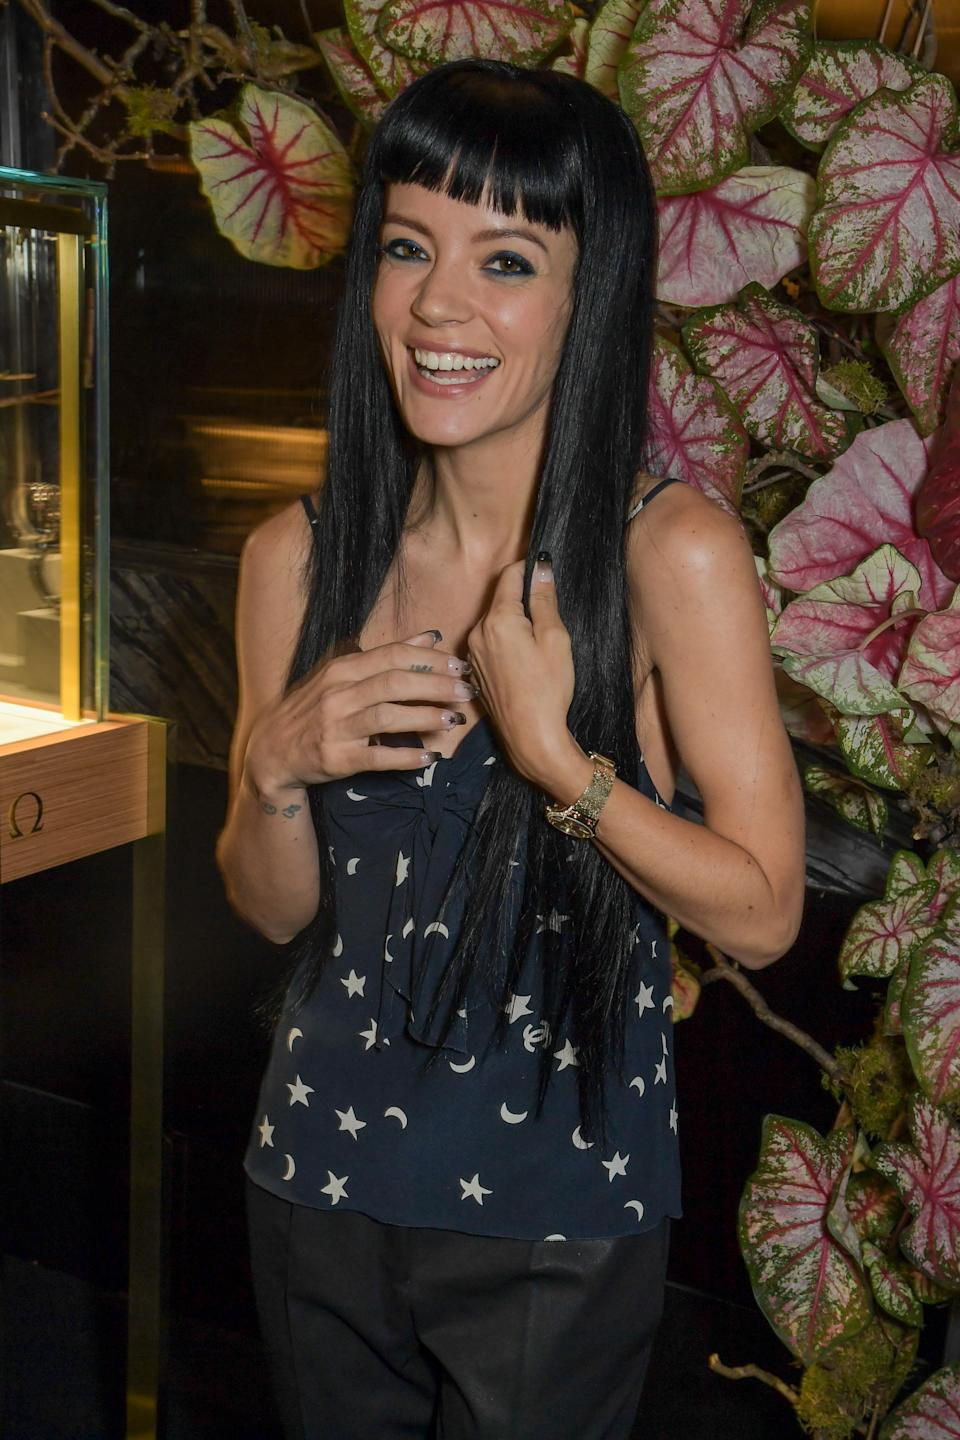 Lily Allen has slammed fans for body-shaming her, saying they